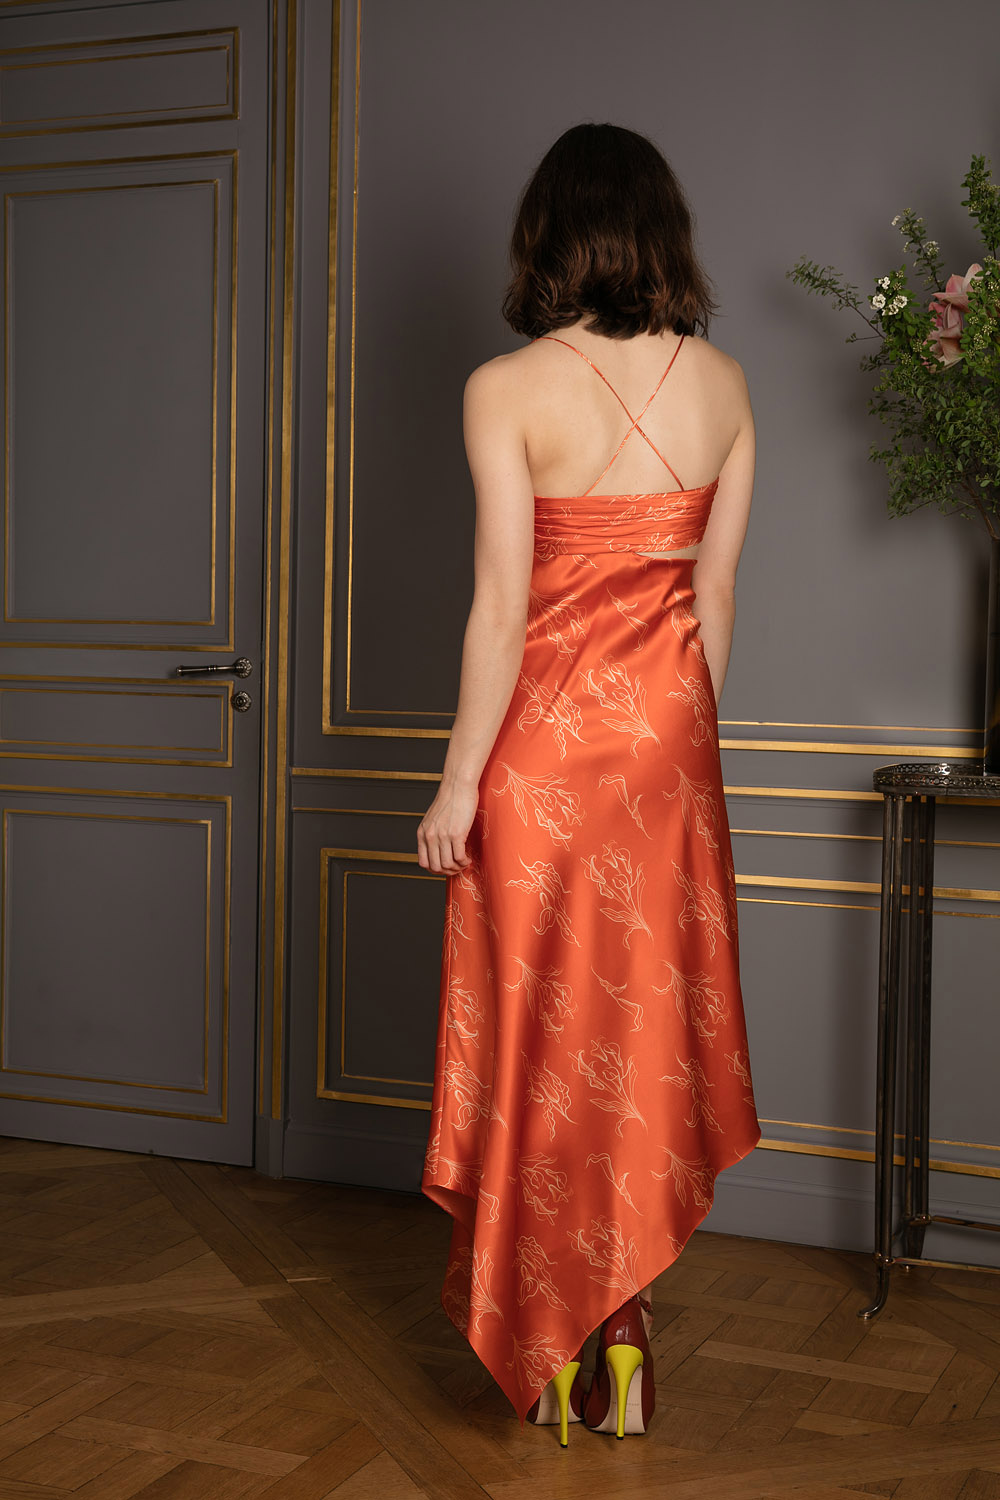 Asymetric orange silk cocktail dress with white floral prints ruched bra and spagetthi straps